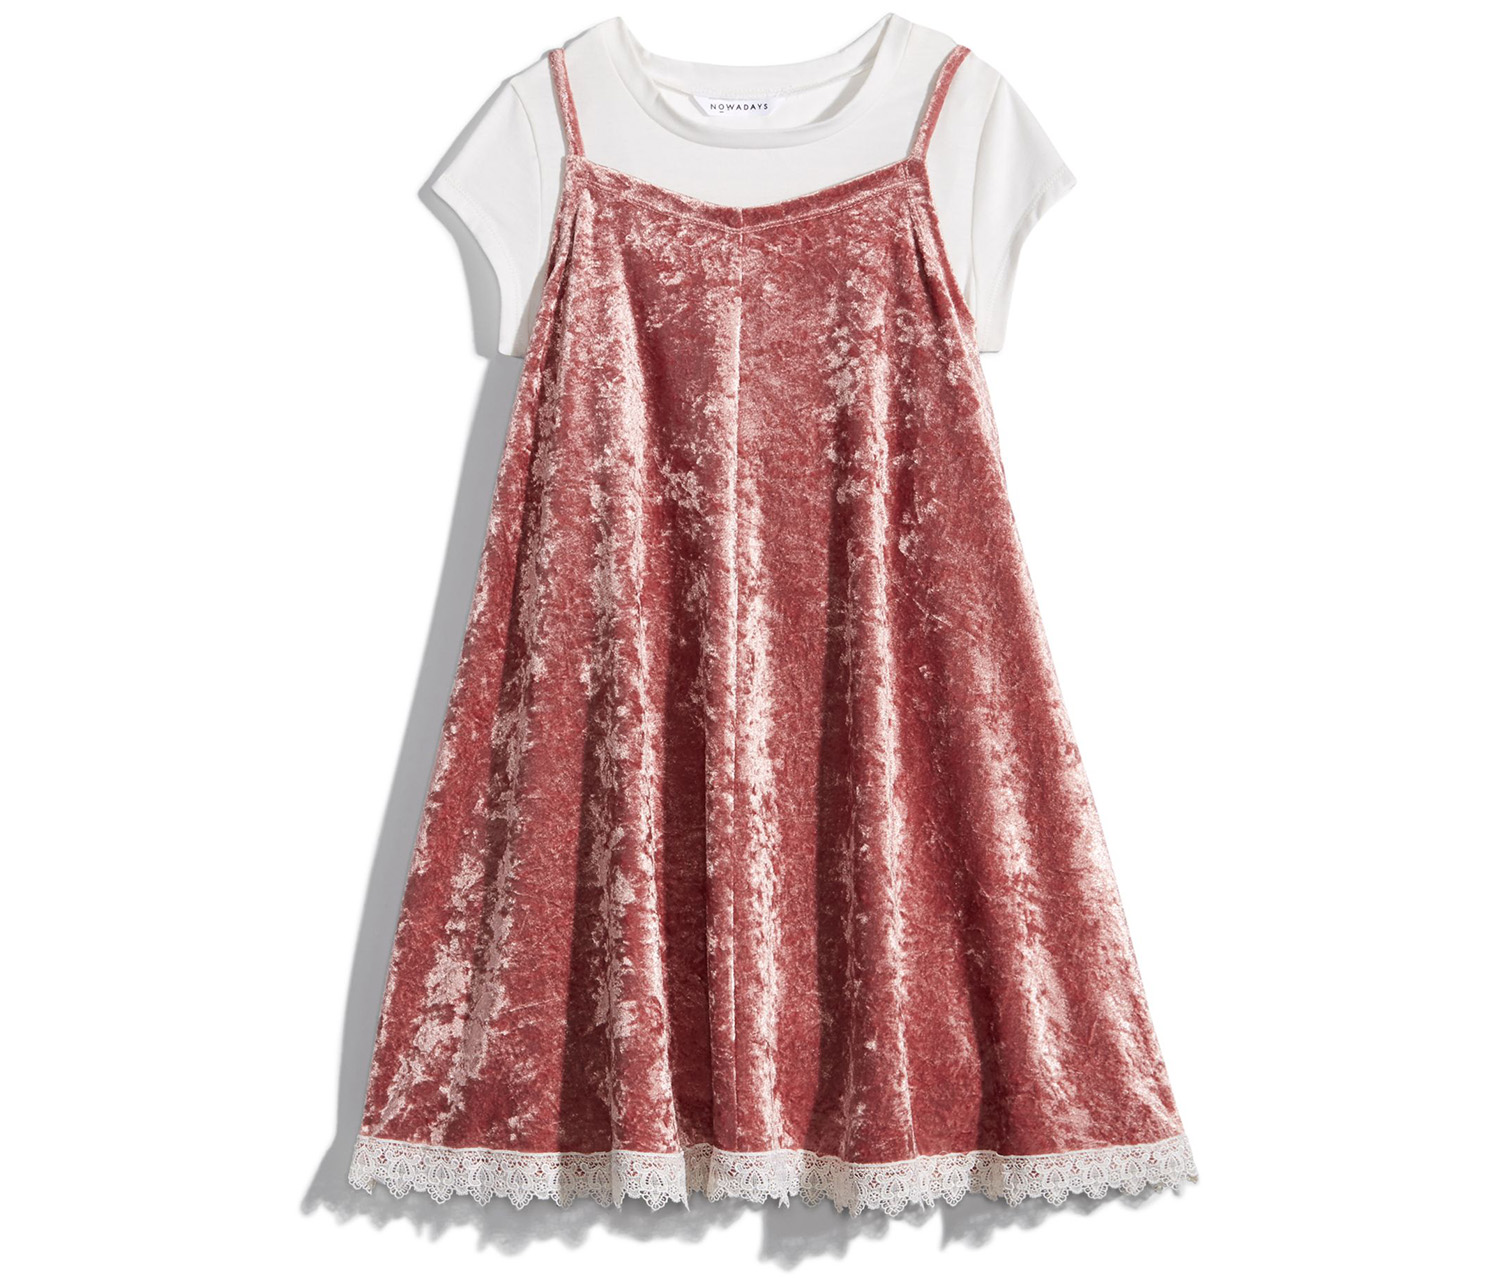 Nowadays Girl A-Line T-Shirt Dress, Pink Velvet